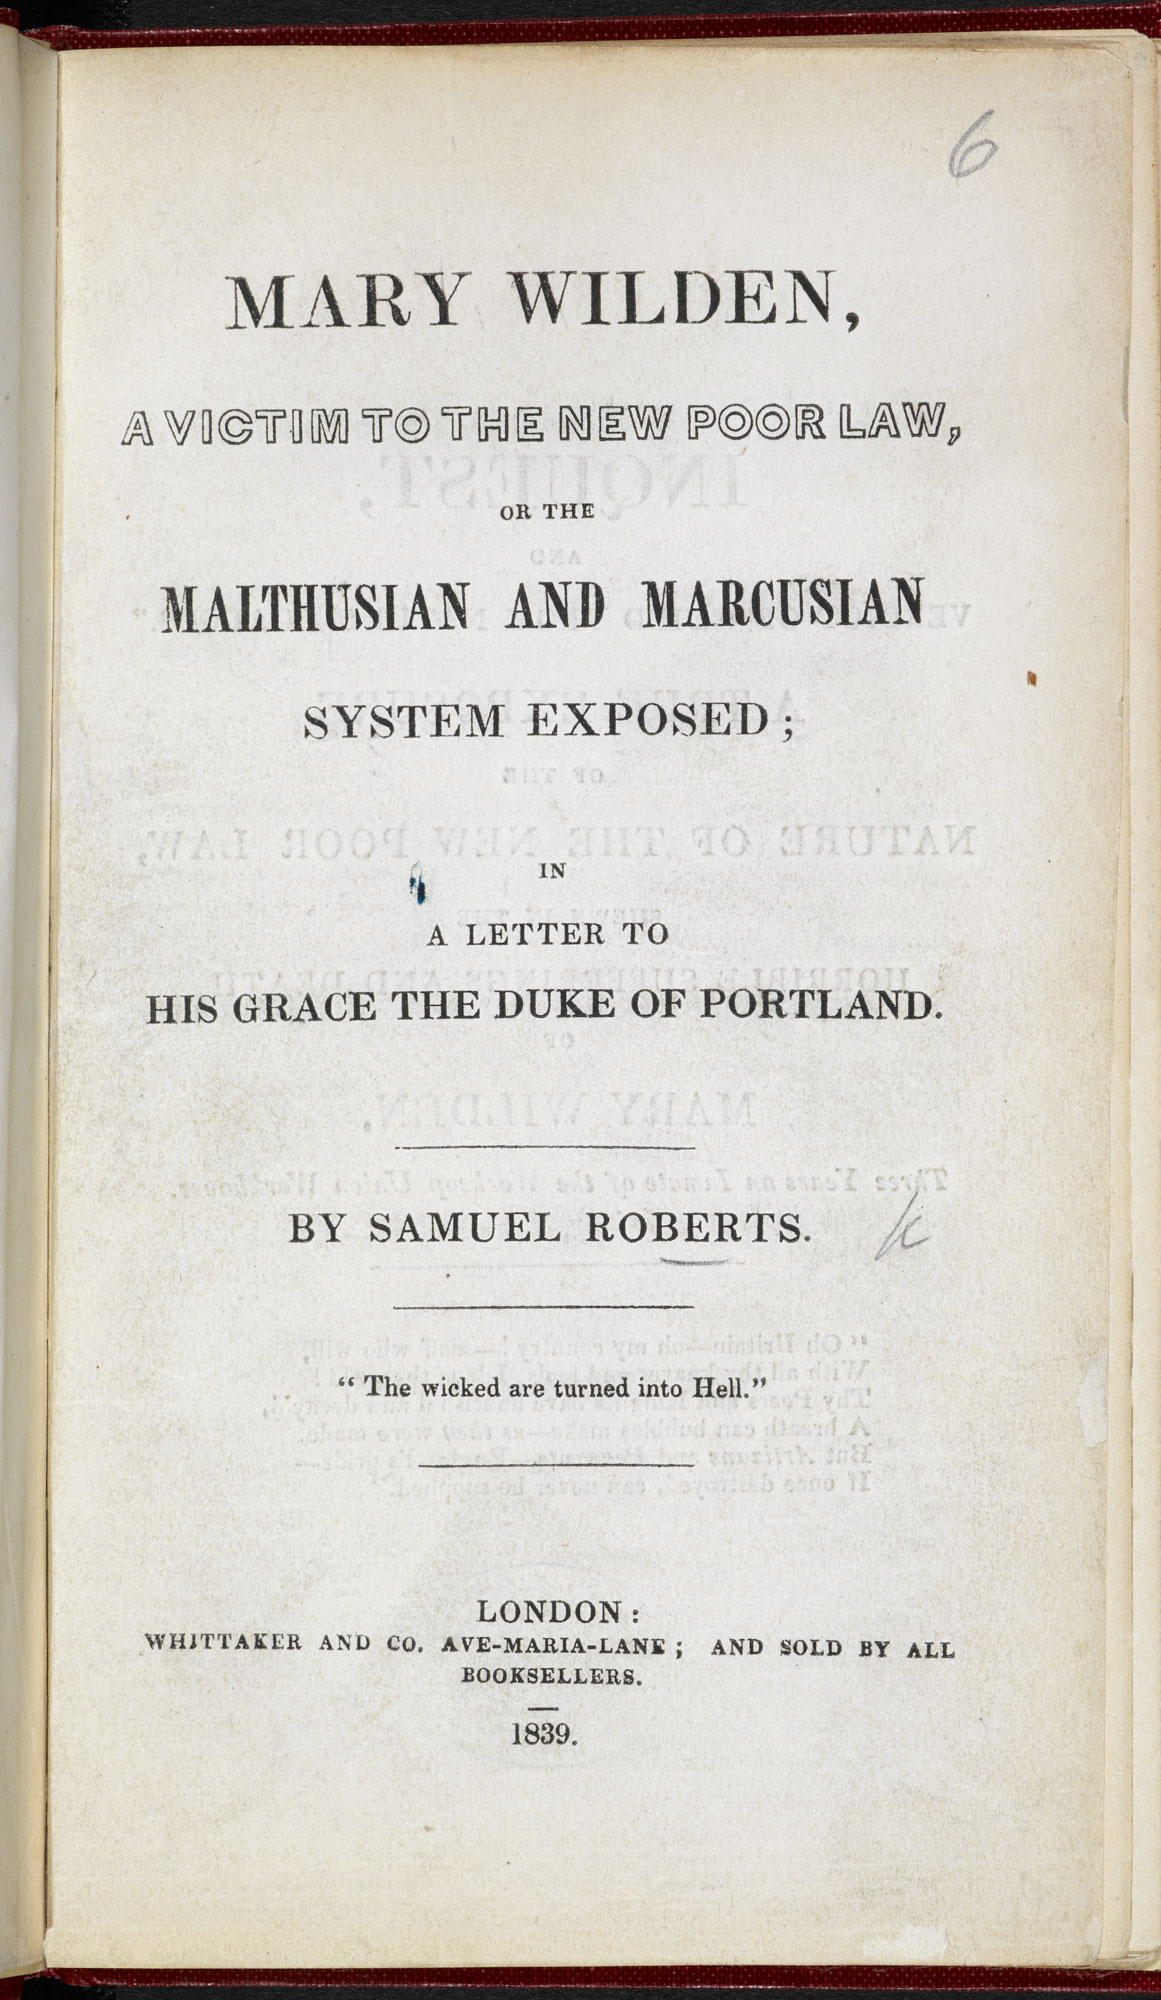 Mary Wilden, a victim to the New Poor Law [page: title page]